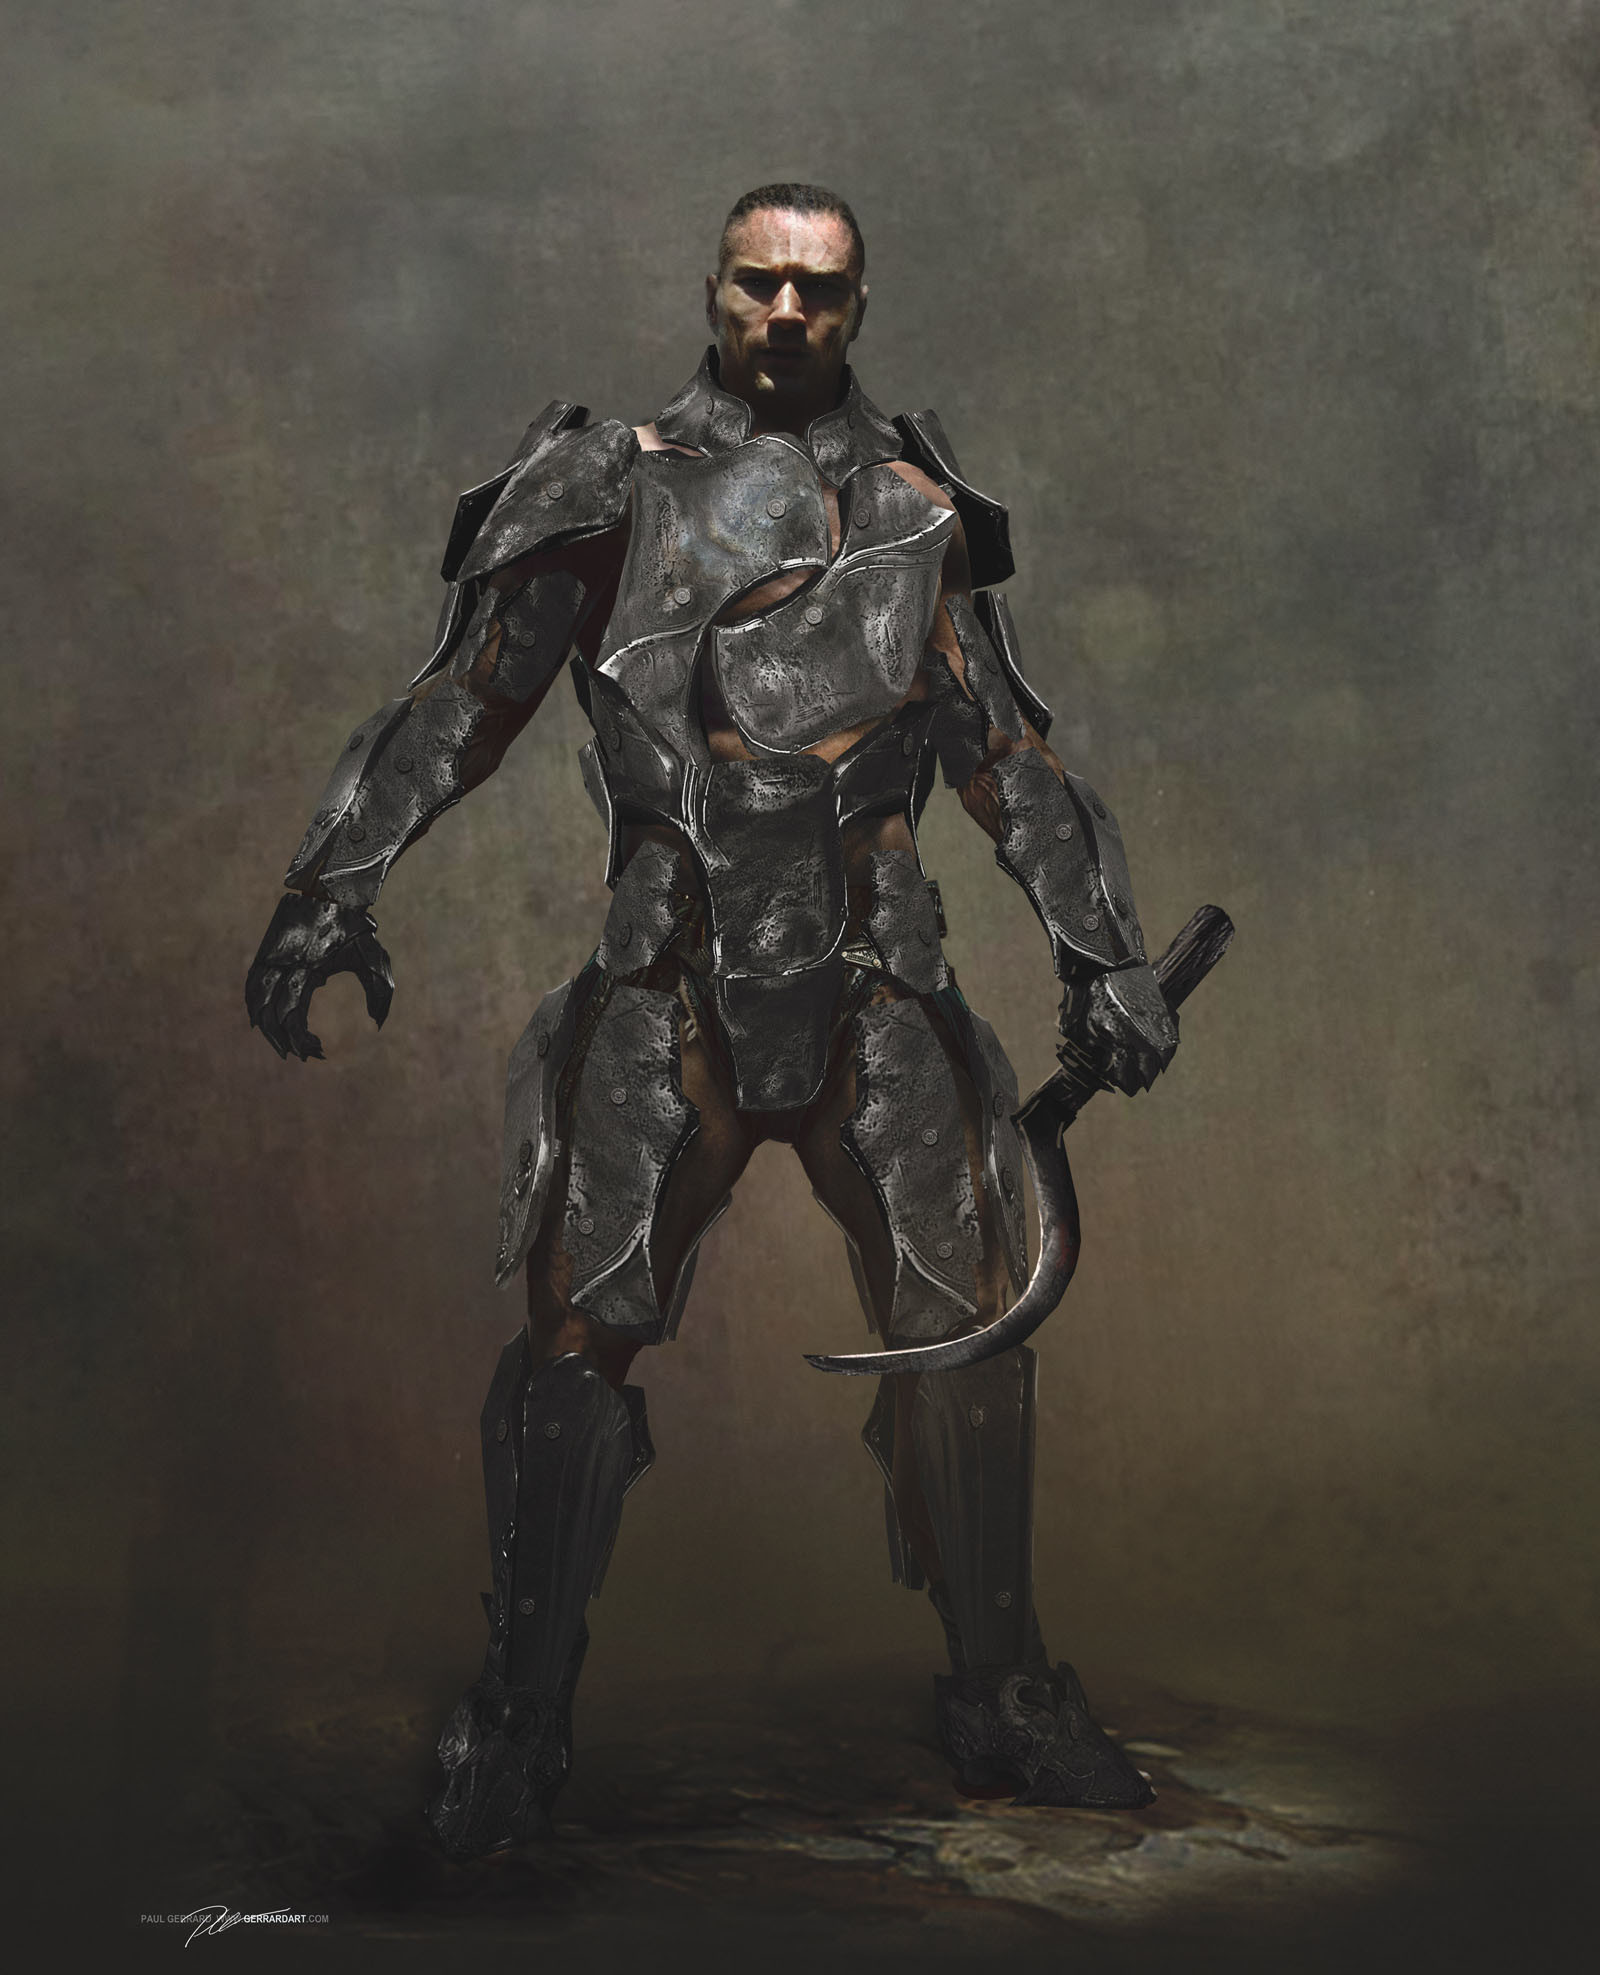 Paul gerrard leopardhex armour 01